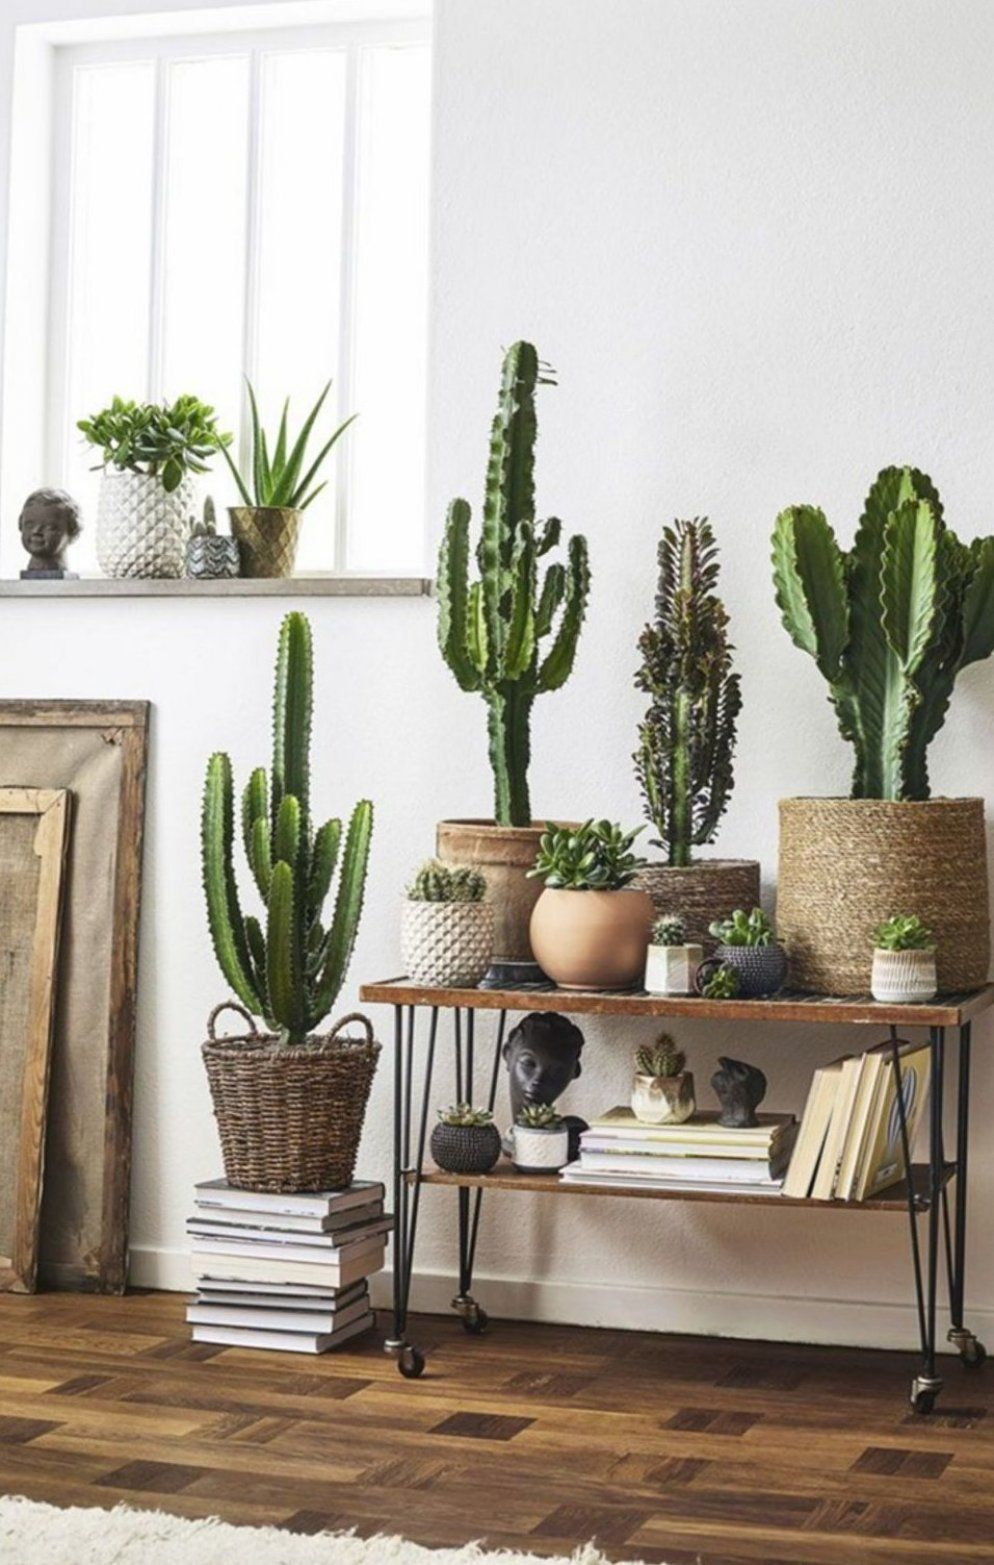 30 Best Creative Cactus Decorations To Beautify Your Home Beautify Cactus Creative Decorations Home Homedecoration Home In 2020 Cactus Decor Decor Cactus Plants